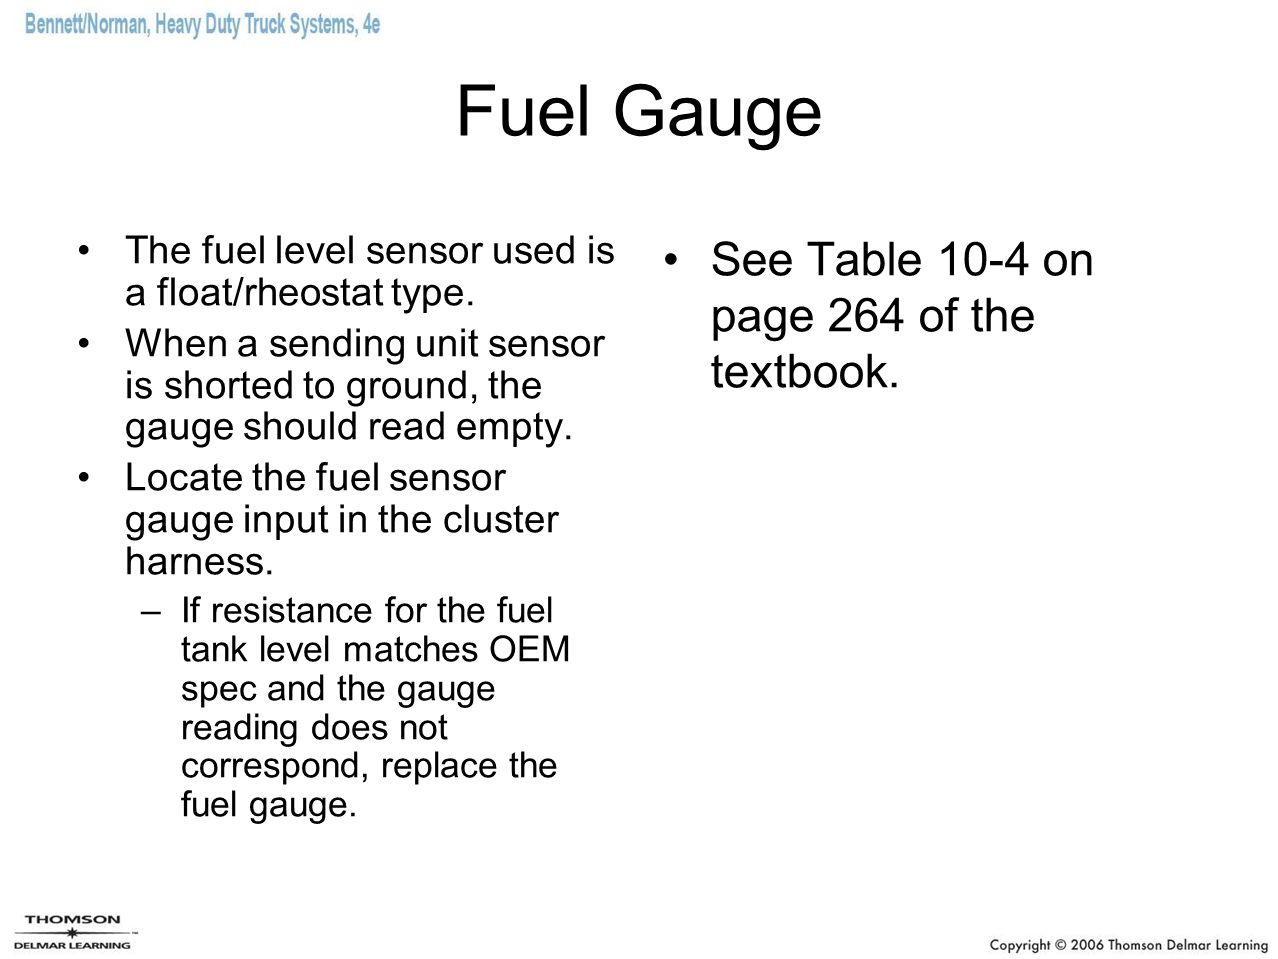 Fuel Gauge The fuel level sensor used is a float/rheostat type. When a sending unit sensor is shorted to ground, the gauge should read empty. Locate t